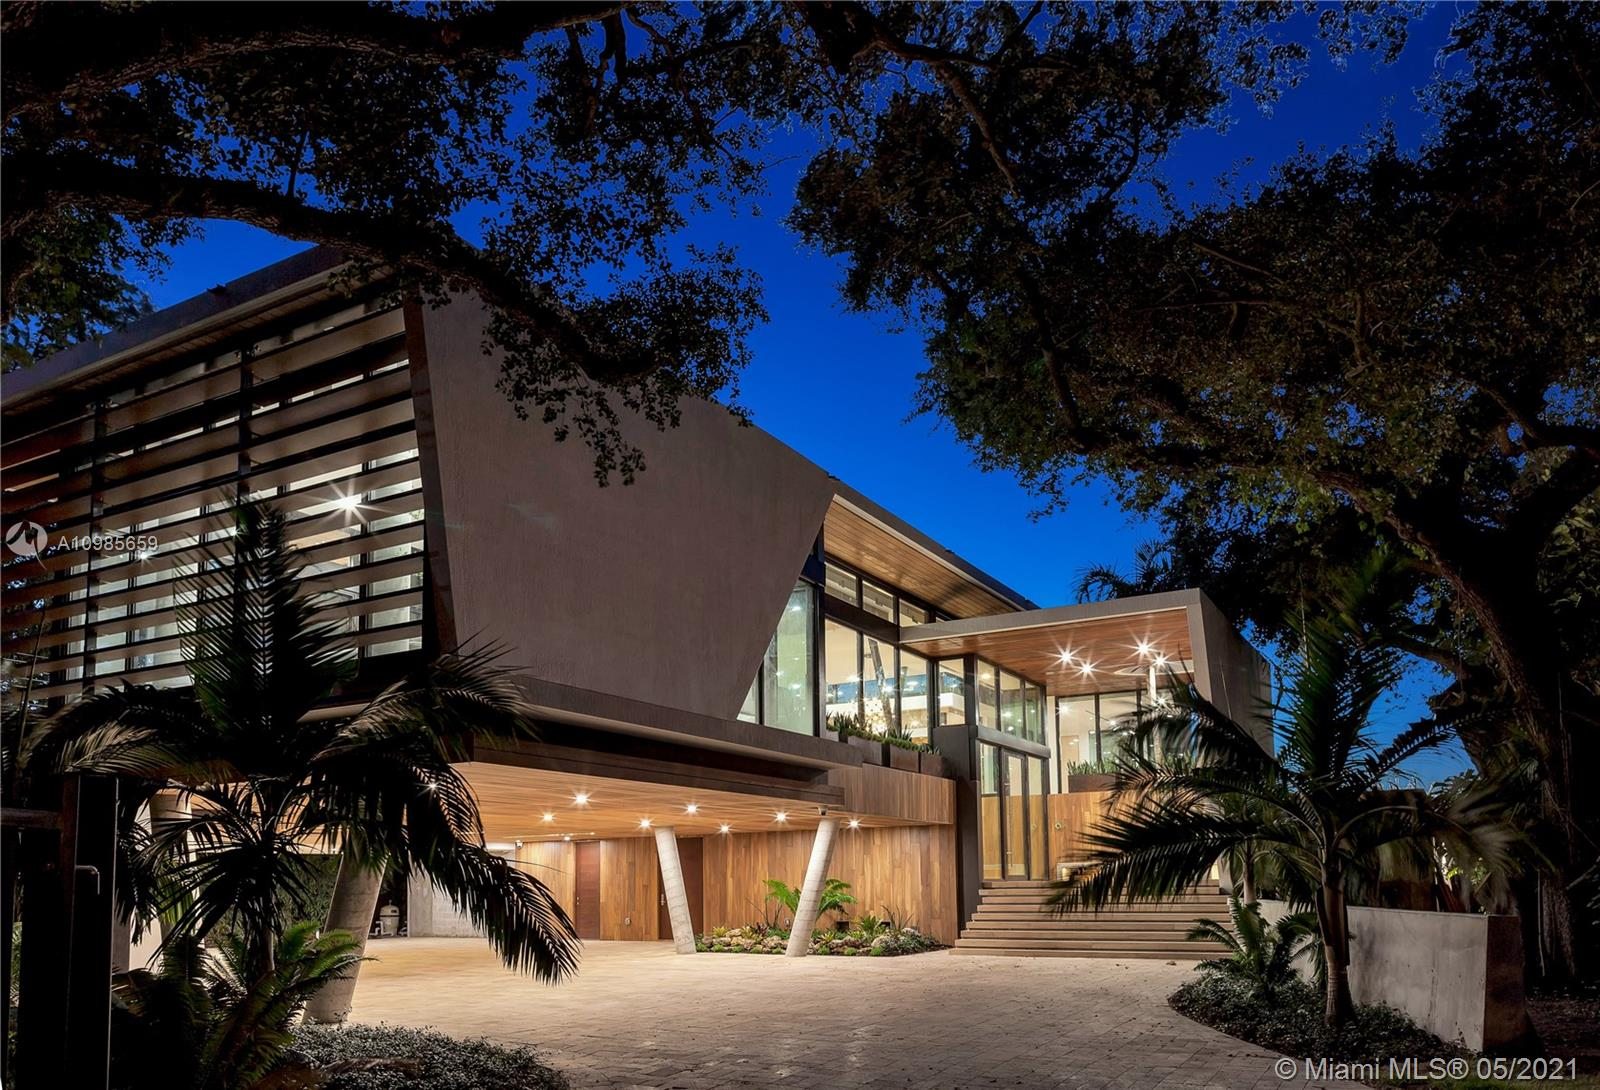 Spectacular Tropical Modern masterpiece set within a lush botanical garden behind a custom coral rock wall and gate. Designed by acclaimed architect Gabriel Lopez. The quality of finishes, fixtures and attention to detail is unsurpassed by any new construction home in the Grove. Double-height ceilings and walls of glass create a seamless blending of interior and fabulous exterior spaces. Custom Brazilian kitchen by Armazem.  Smart Home automation. 24 hour security guards. Live amongst the elite on the exclusive residences behind Viscaya Gardens.